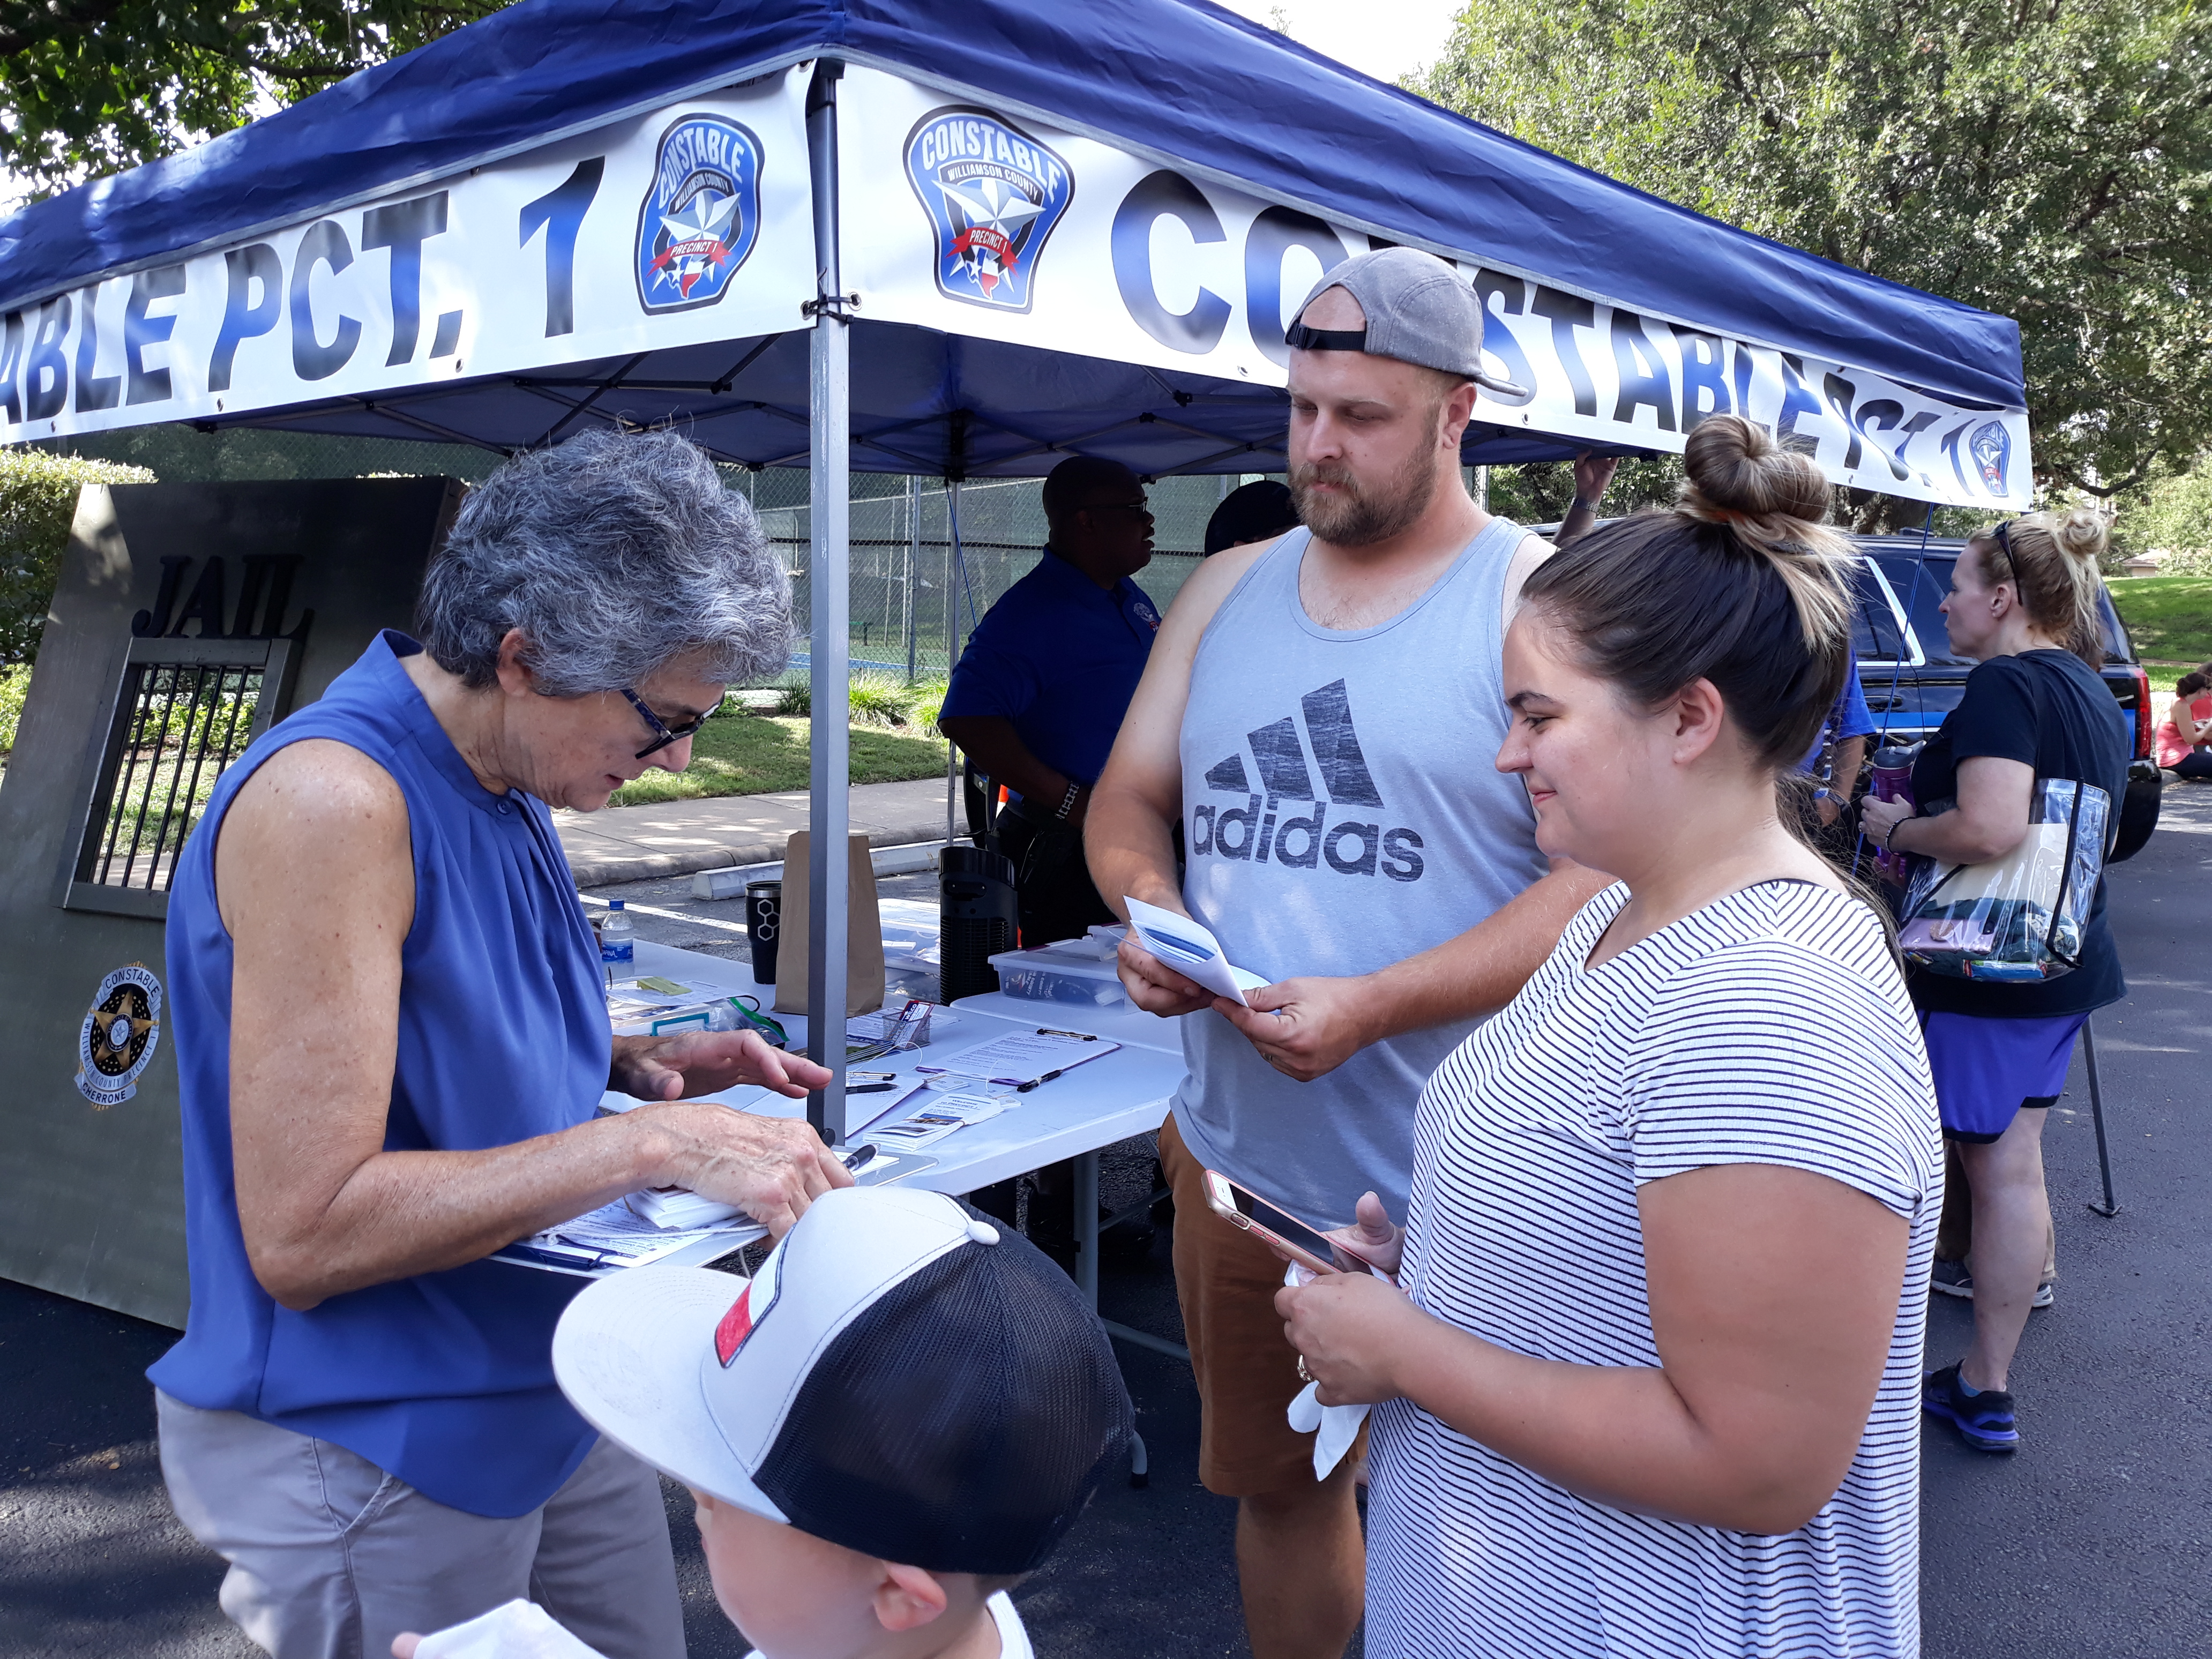 Commissioner Cook registered Precinct 1 voters at the festival and explained the Wilco bond election.